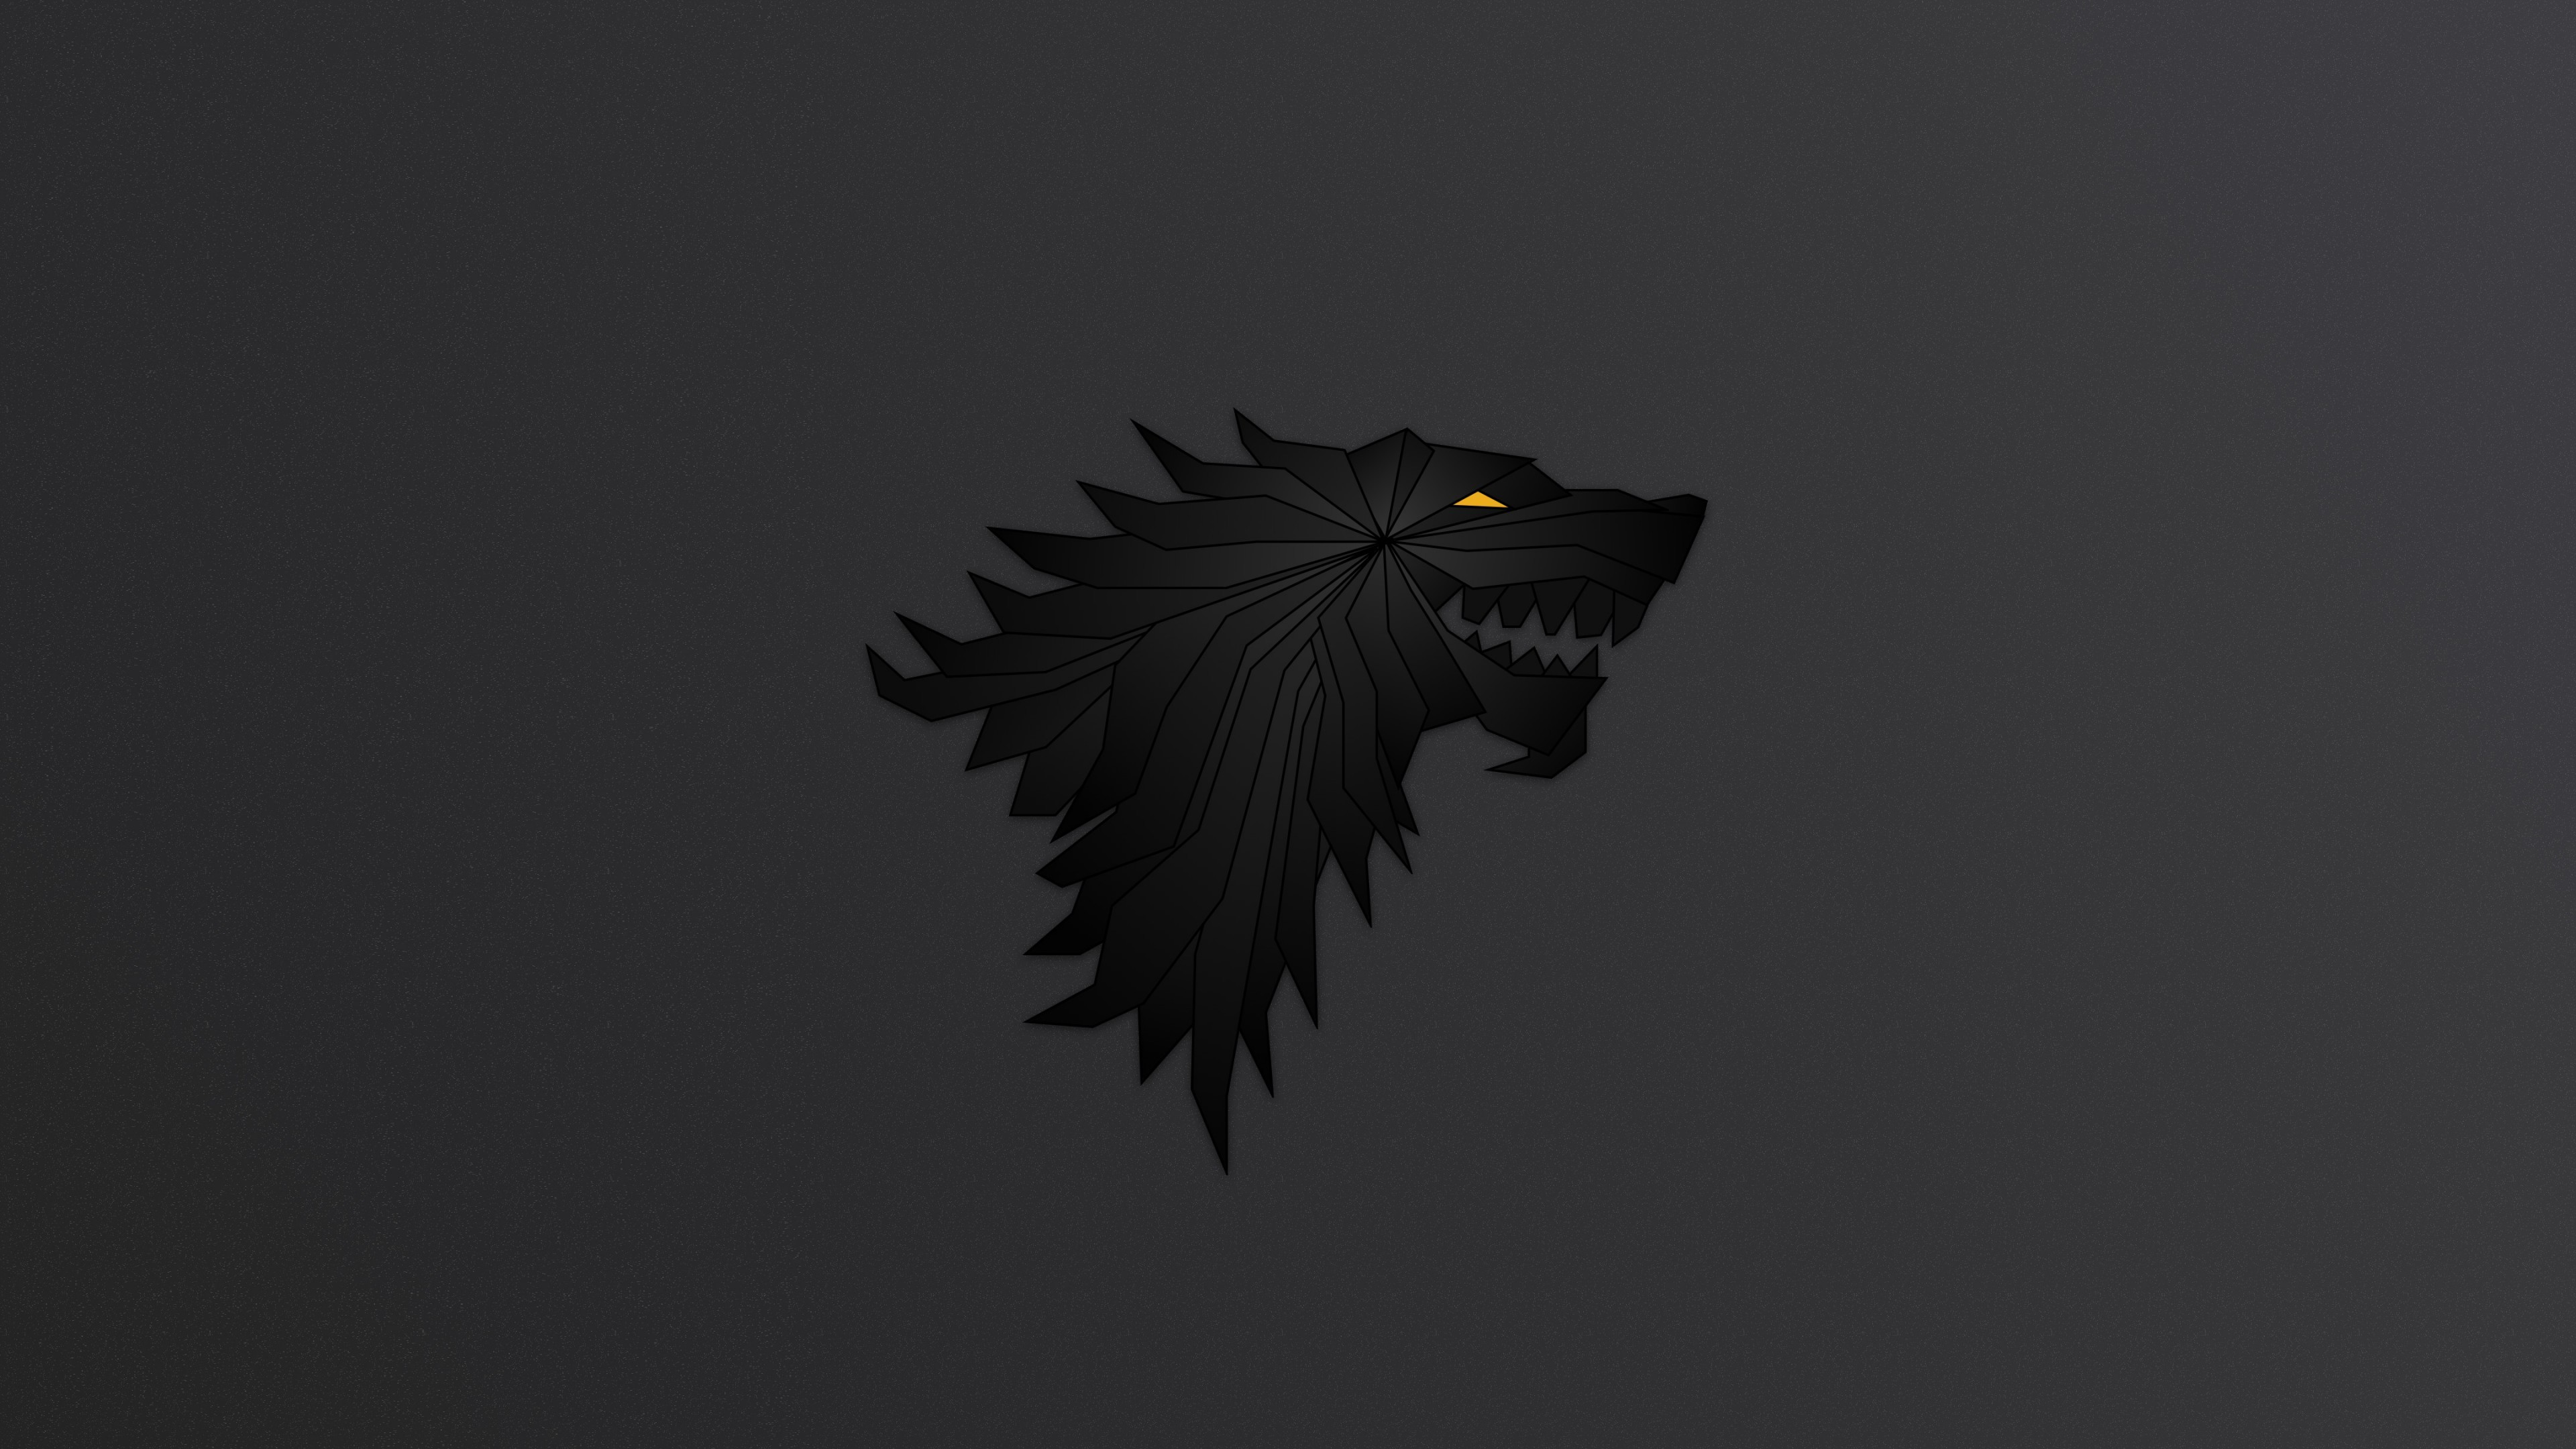 3840x2160 House Stark Game Of Thrones Minimalism